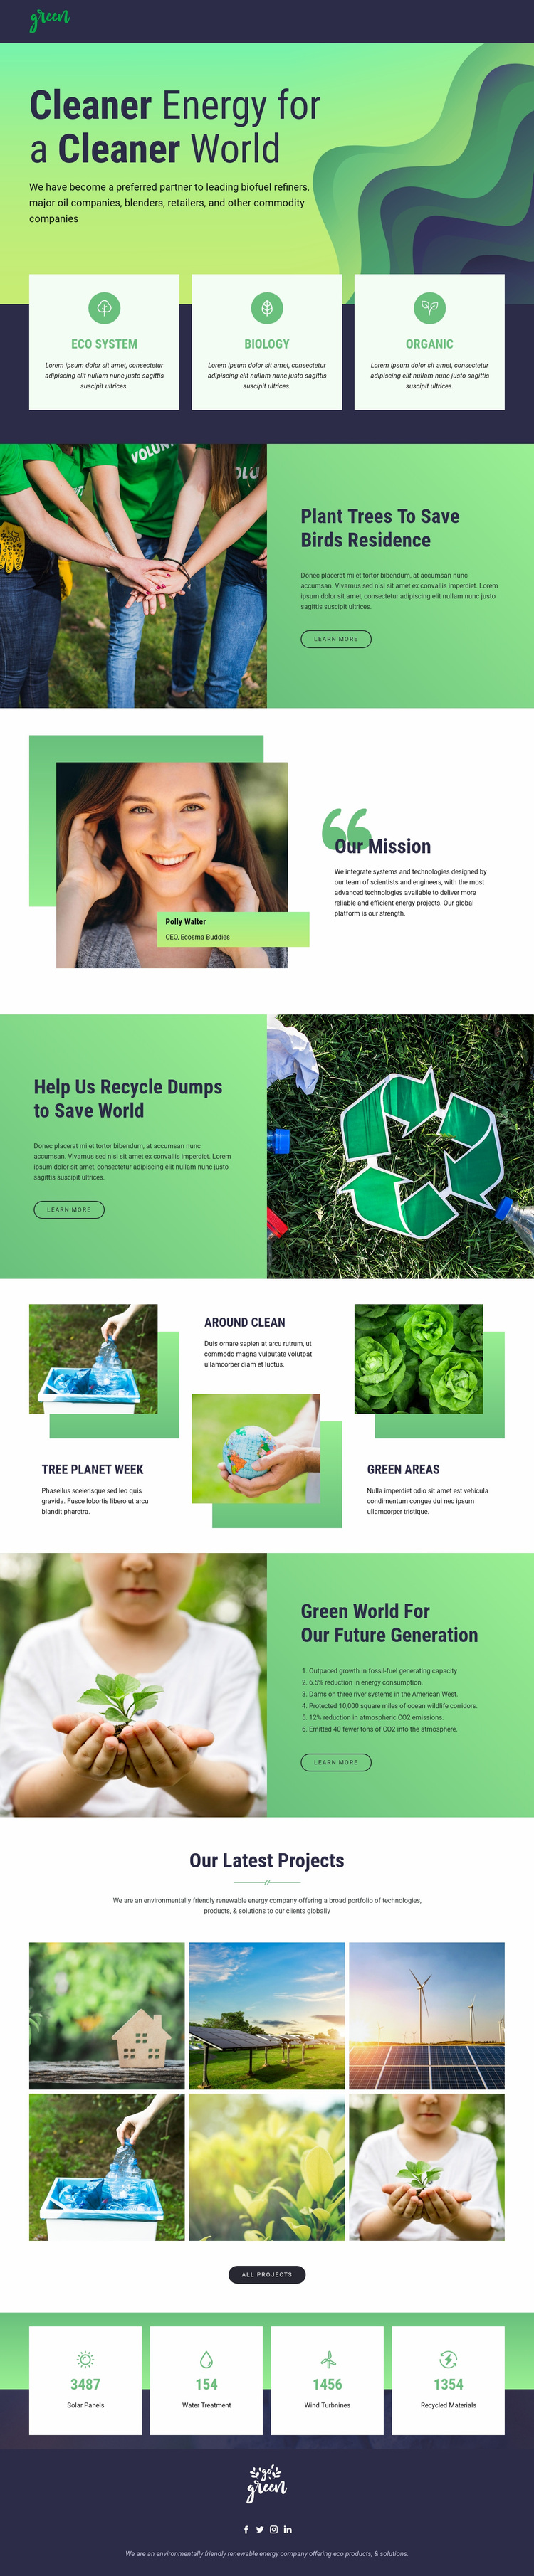 Clean energy to save nature Web Page Designer